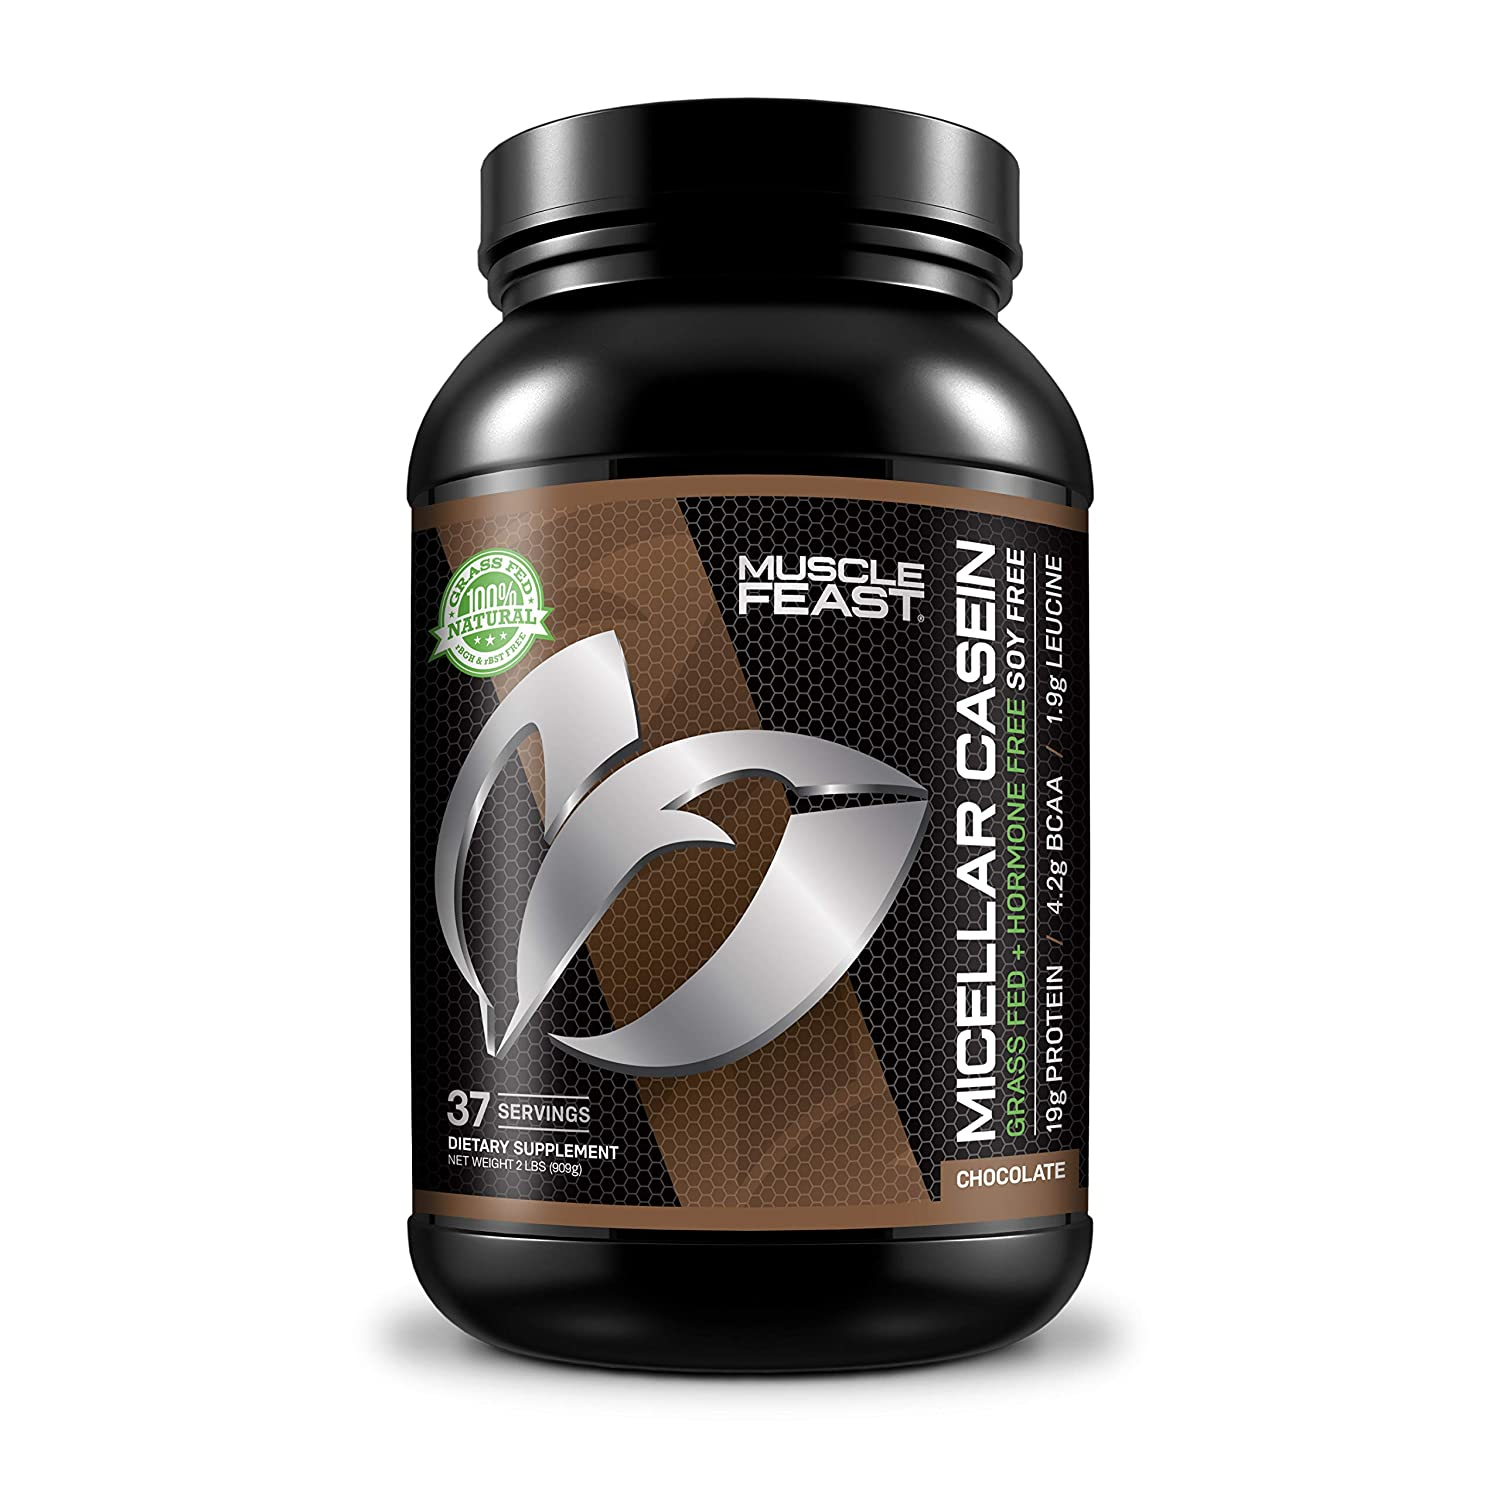 MUSCLE FEAST Grass Fed Micellar Casein, All Natural, Hormone Free, Slow Digesting, 100% Pure, 19g Protein, 88 Calories (Chocolate, 2lb)